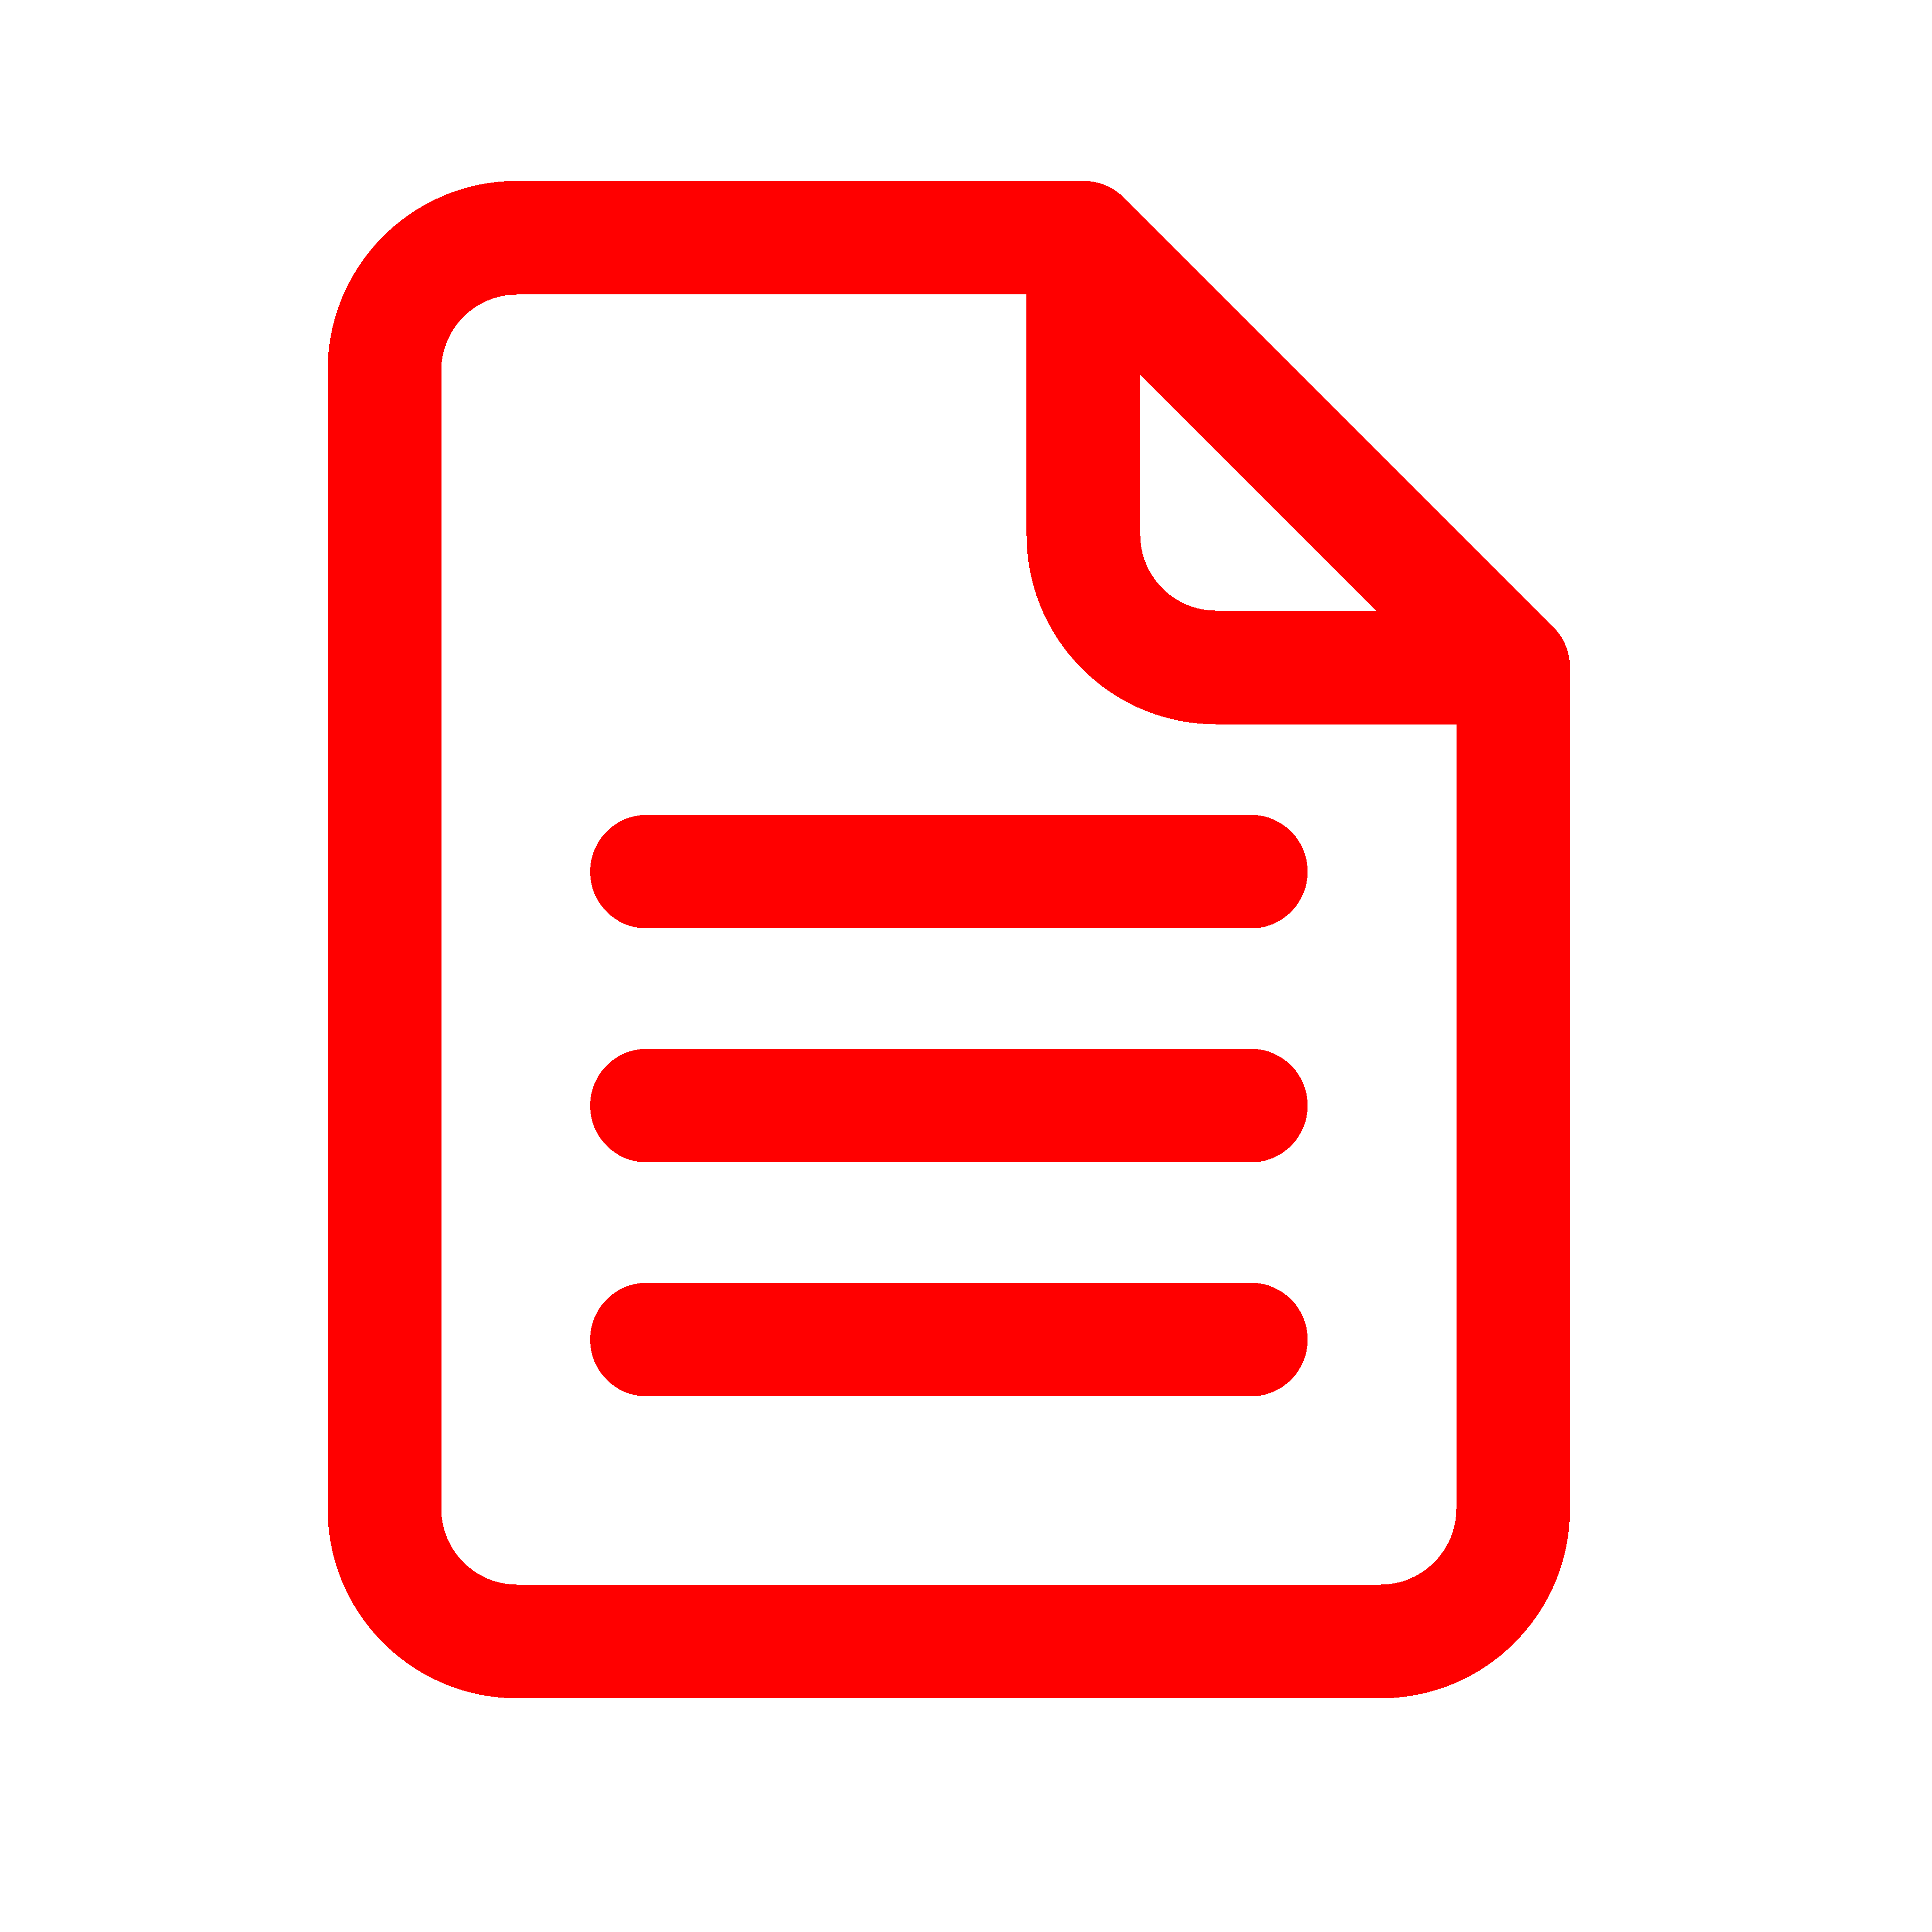 Application document as an icon